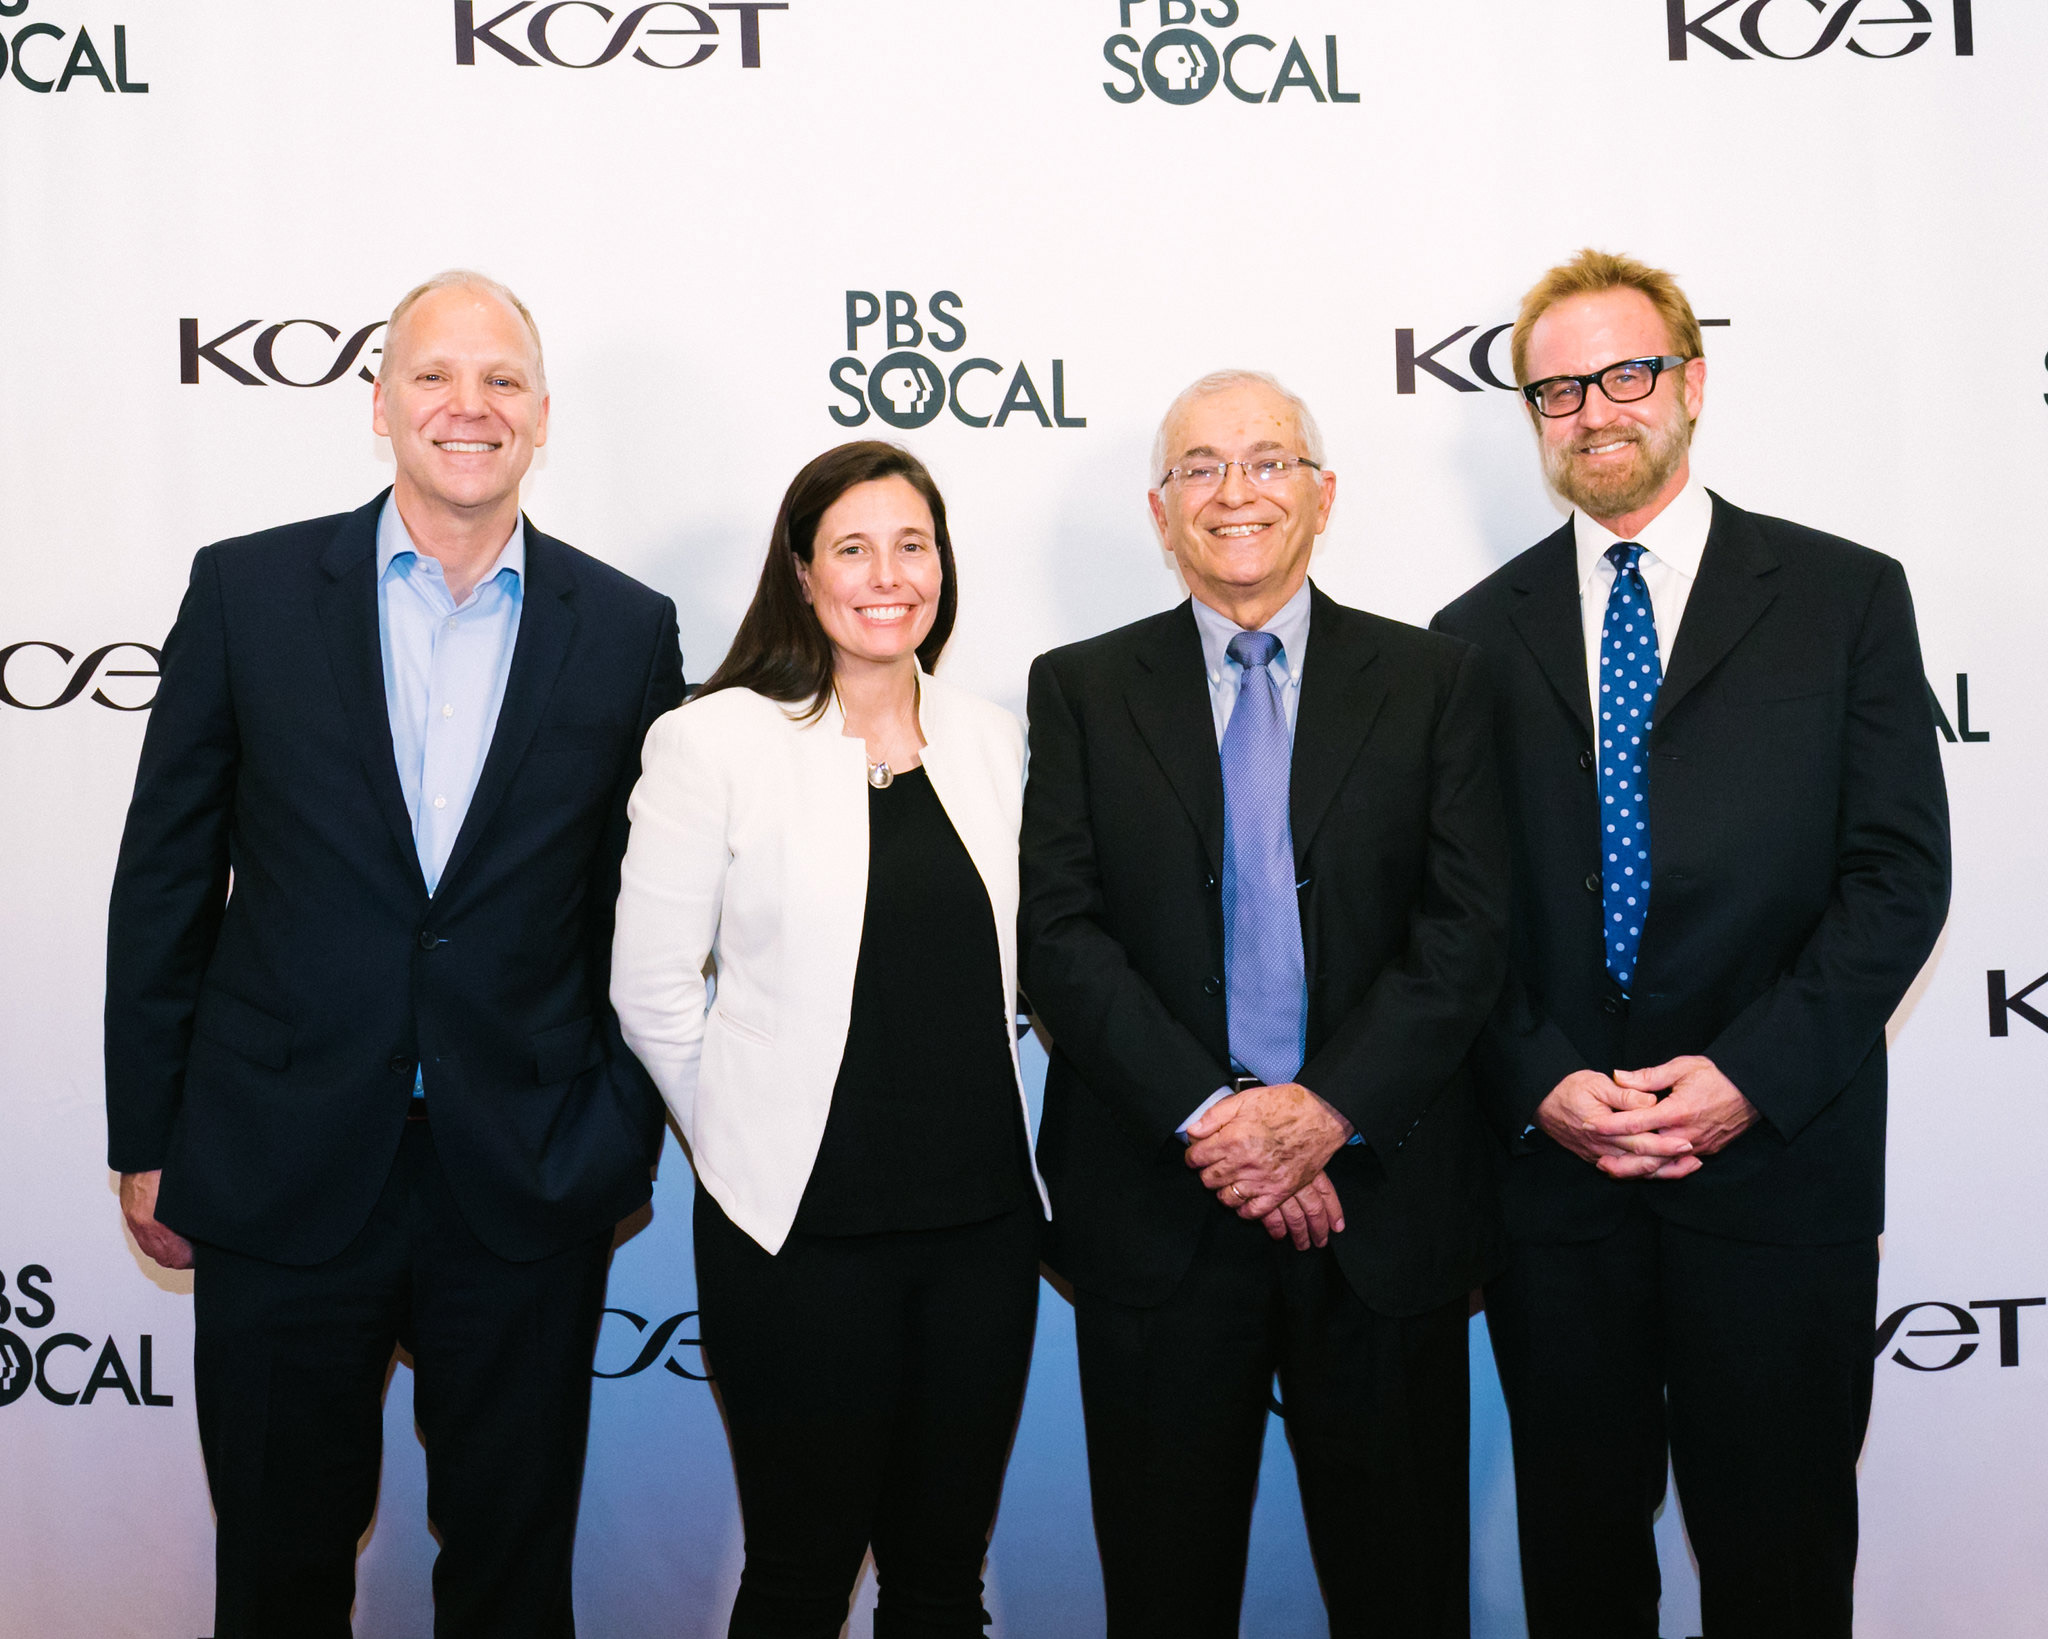 Public Media Group of Southern California President & CEO Andrew Russell, VP of Space Systems Division for Northrop Grumman Sarah Willoughby, Director of Jet Propulsion Laboratory, Dr. Charles Elachi and Filmmaker Peter Jones (BLUE SKY METROPOLIS)